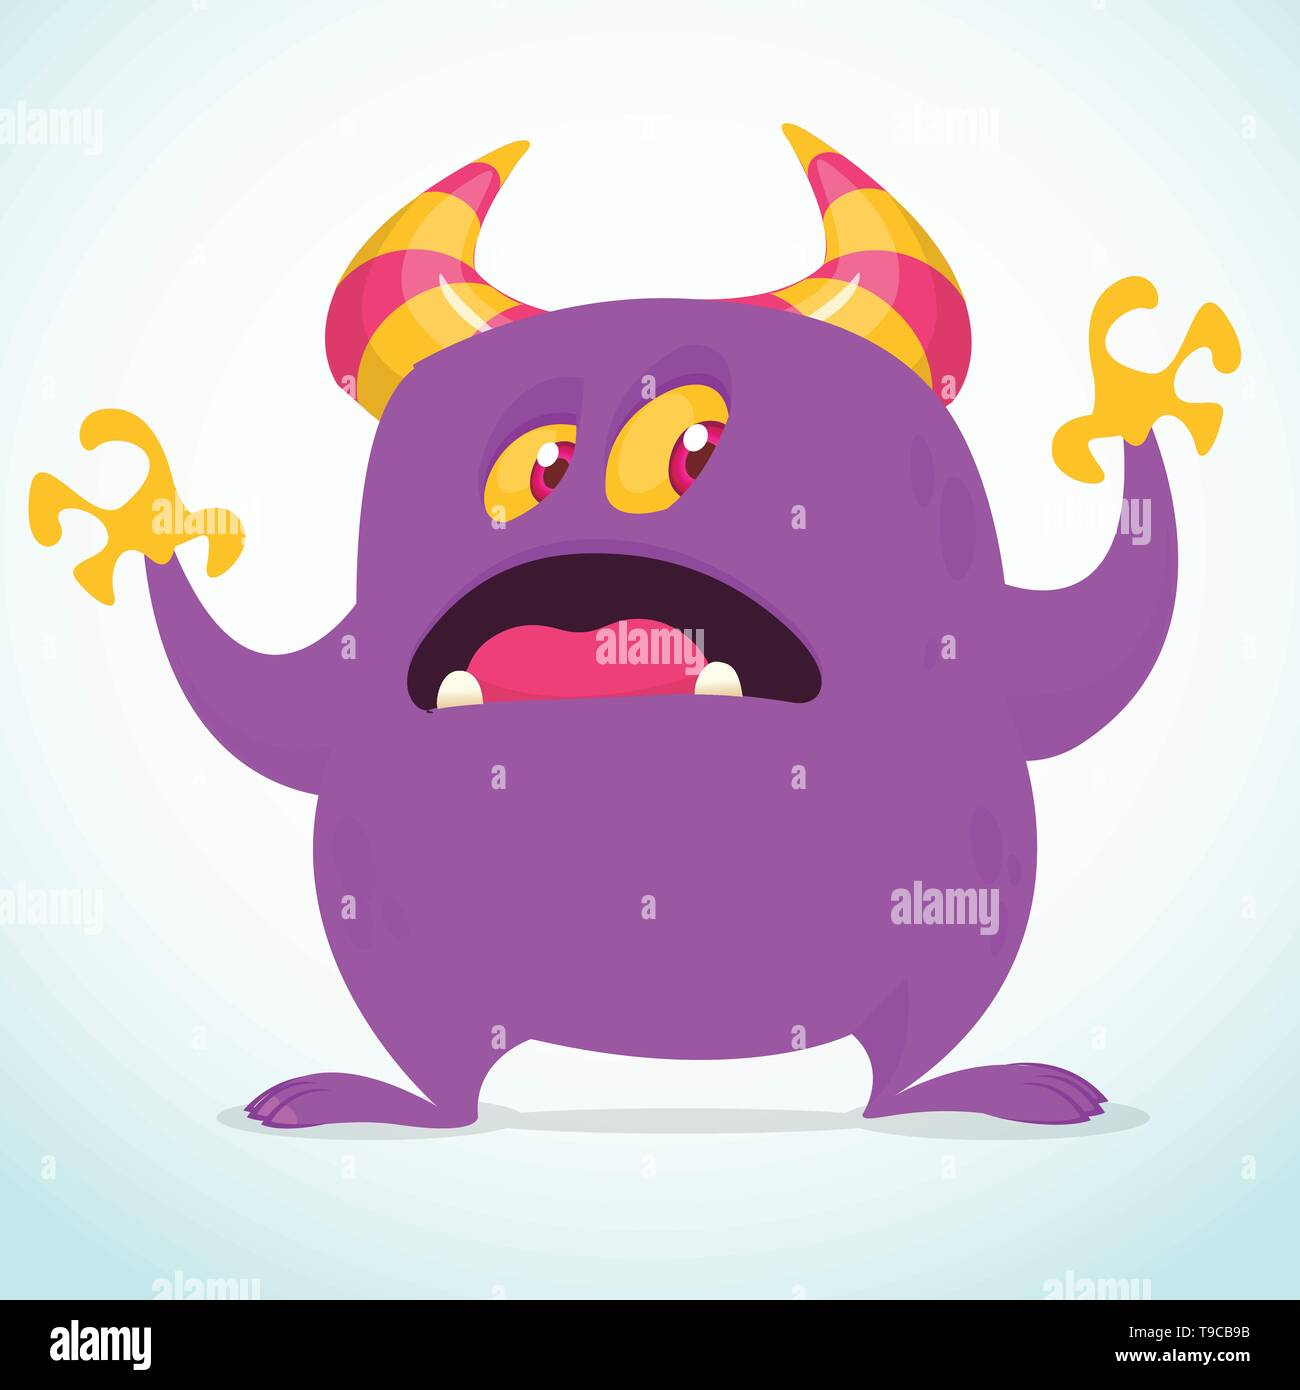 Scared cartoon monster. Vector illustration clipart - Stock Image